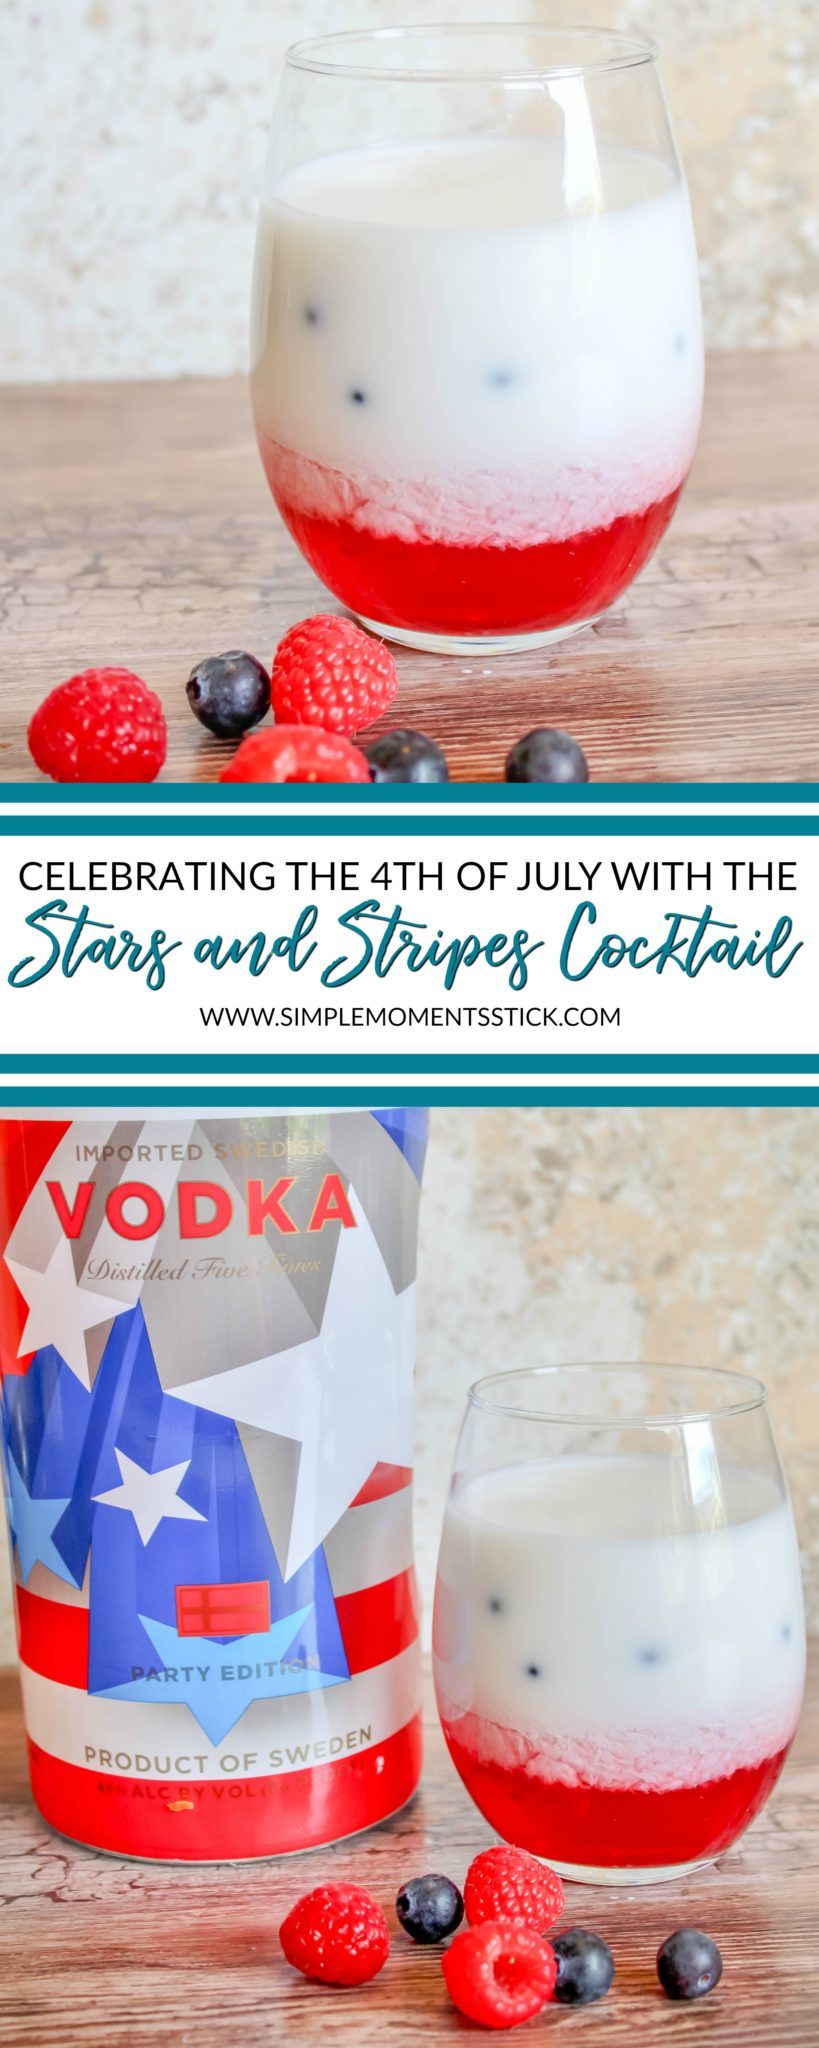 Get the instructions for a fantastic Fourth of July cocktail